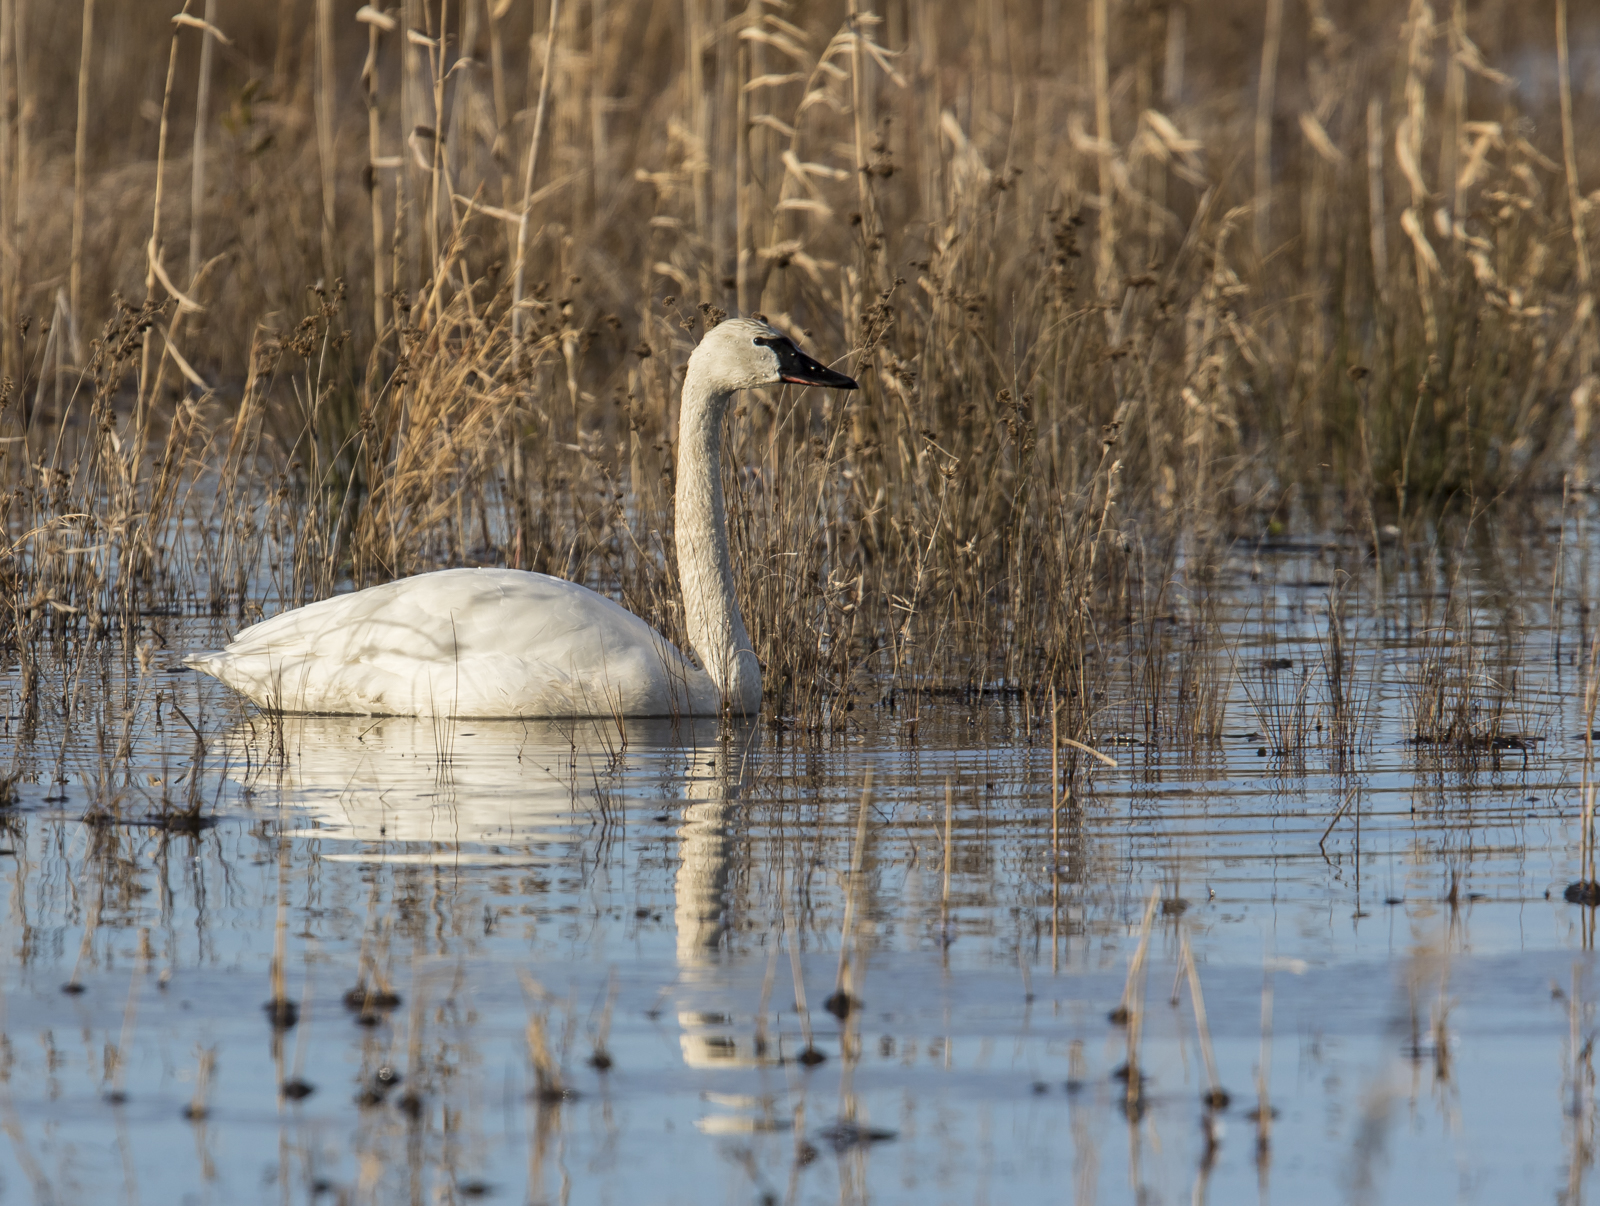 tundra swan in impoundment